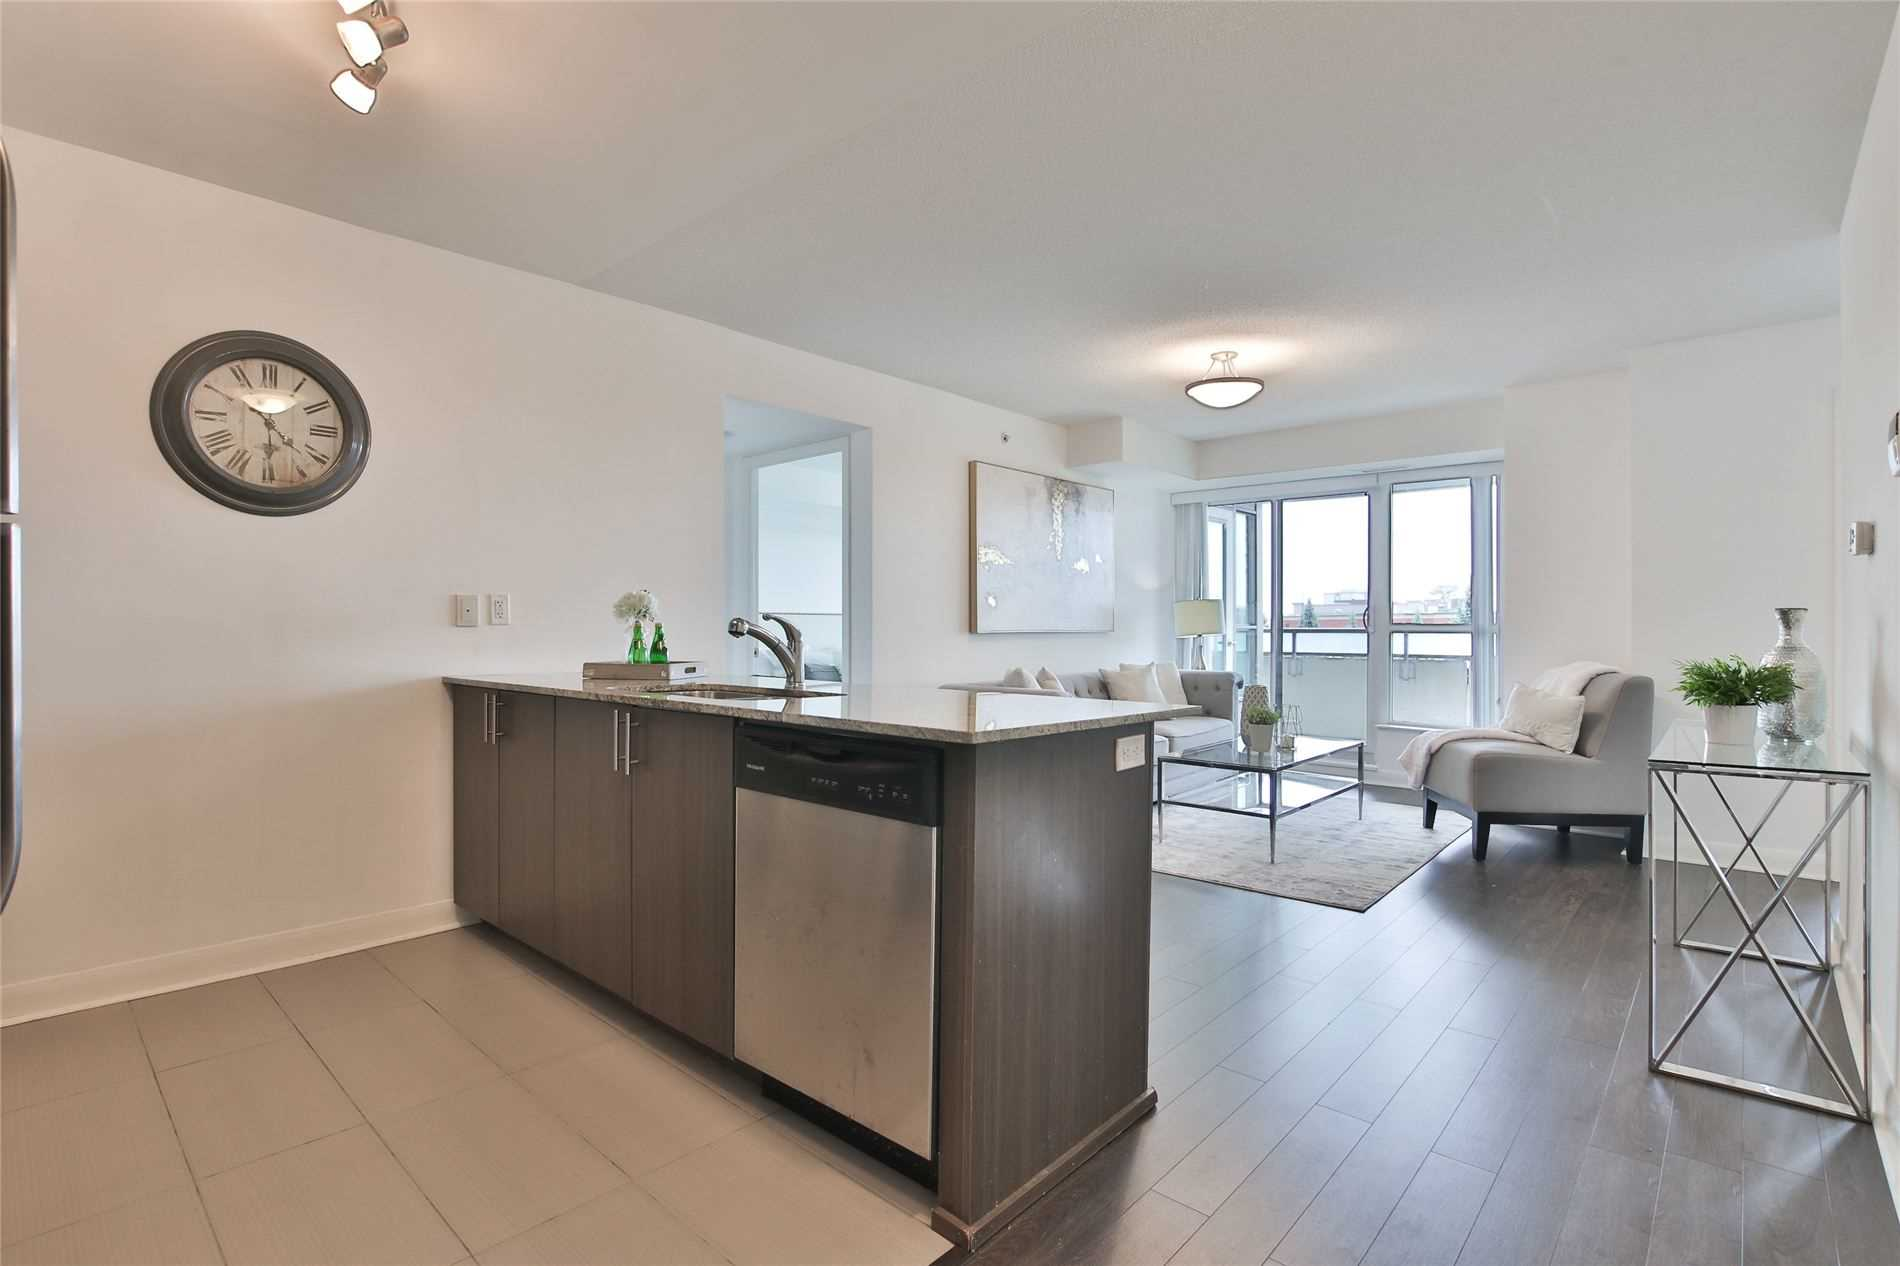 209 - 75 Norman Bethune Ave - Beaver Creek Business Park Condo Apt for sale, 2 Bedrooms (N5305489) - #11